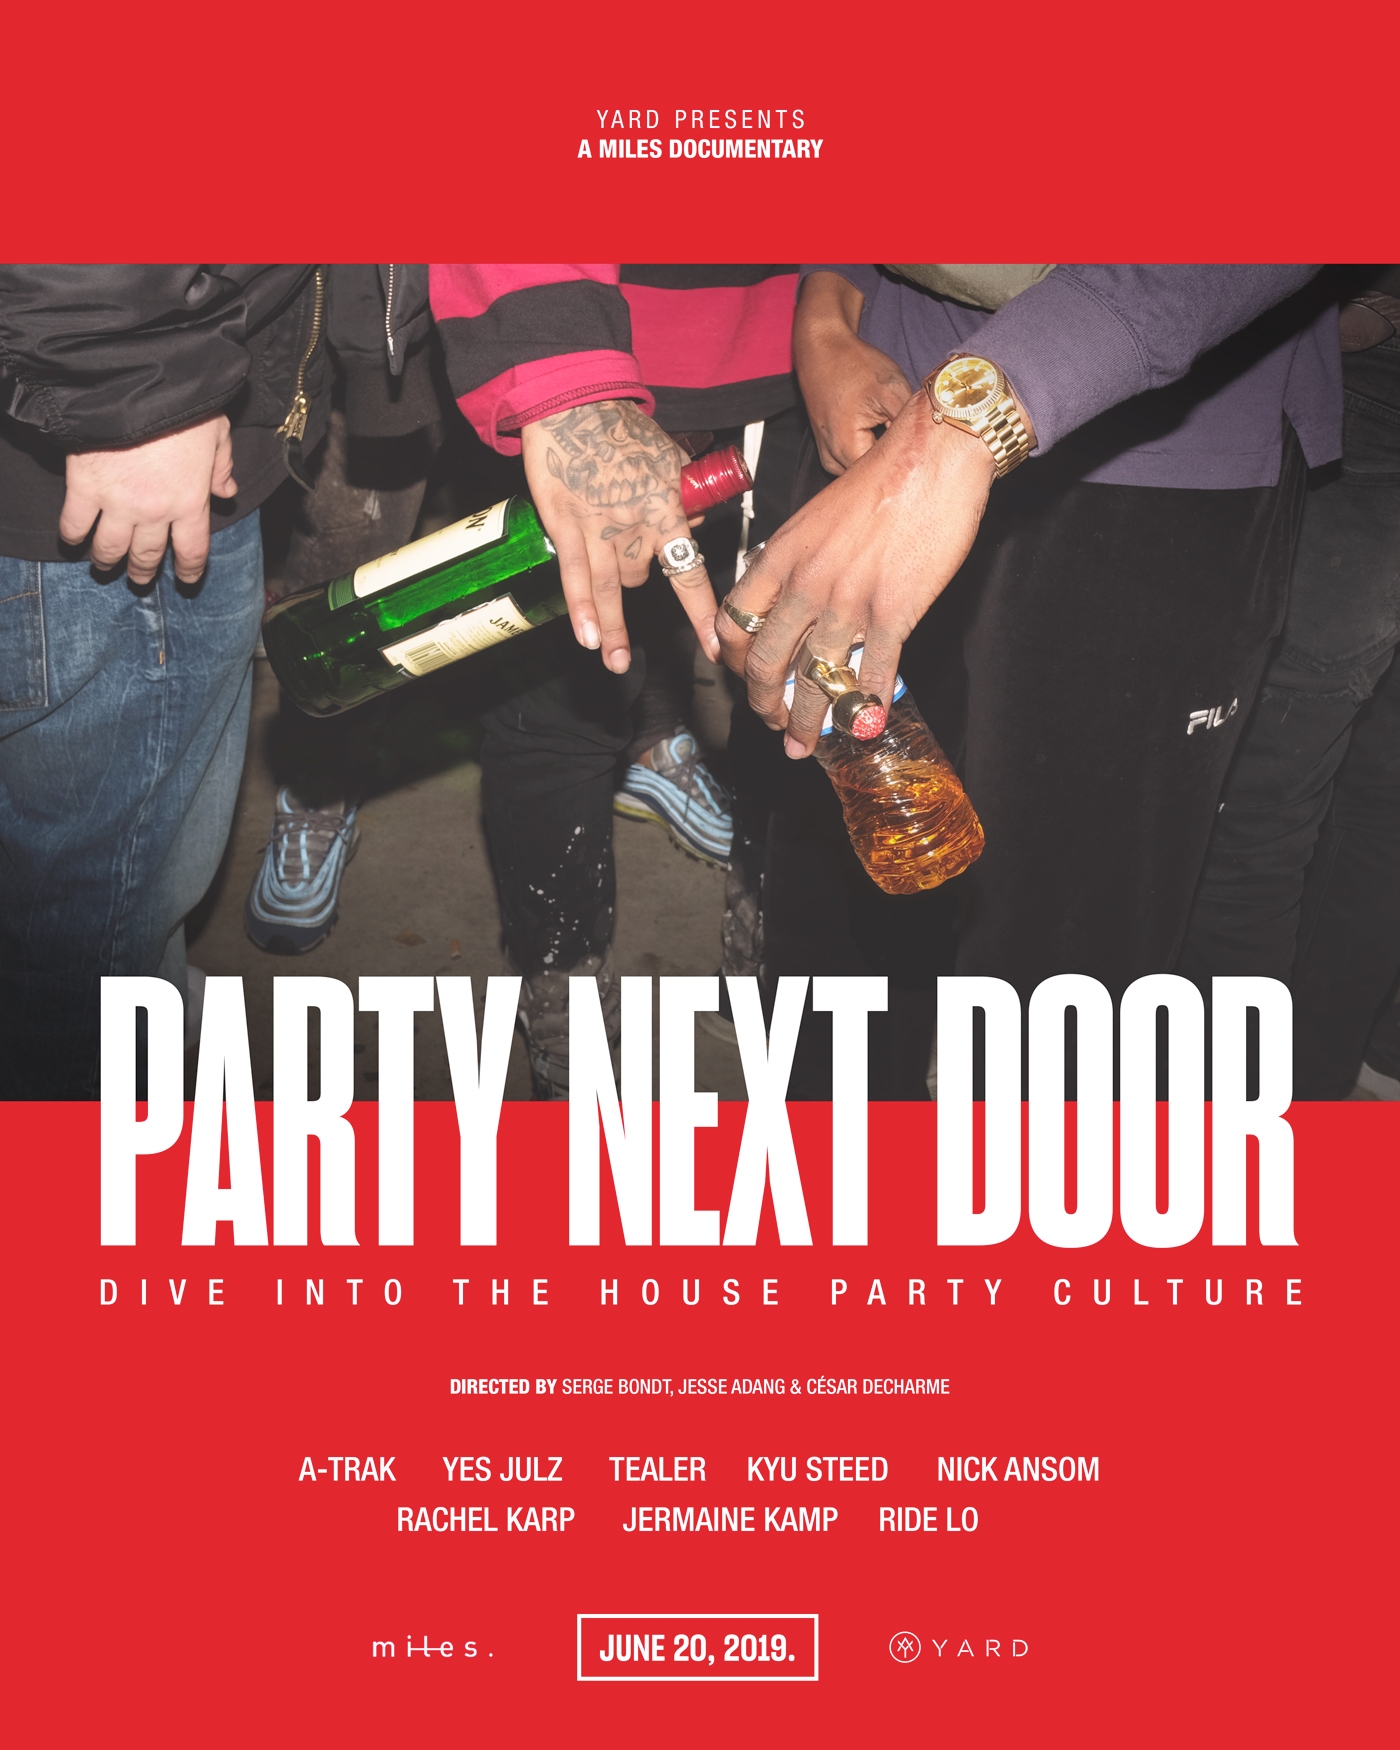 party-next-door-docu-house-party-trailer-yard-1